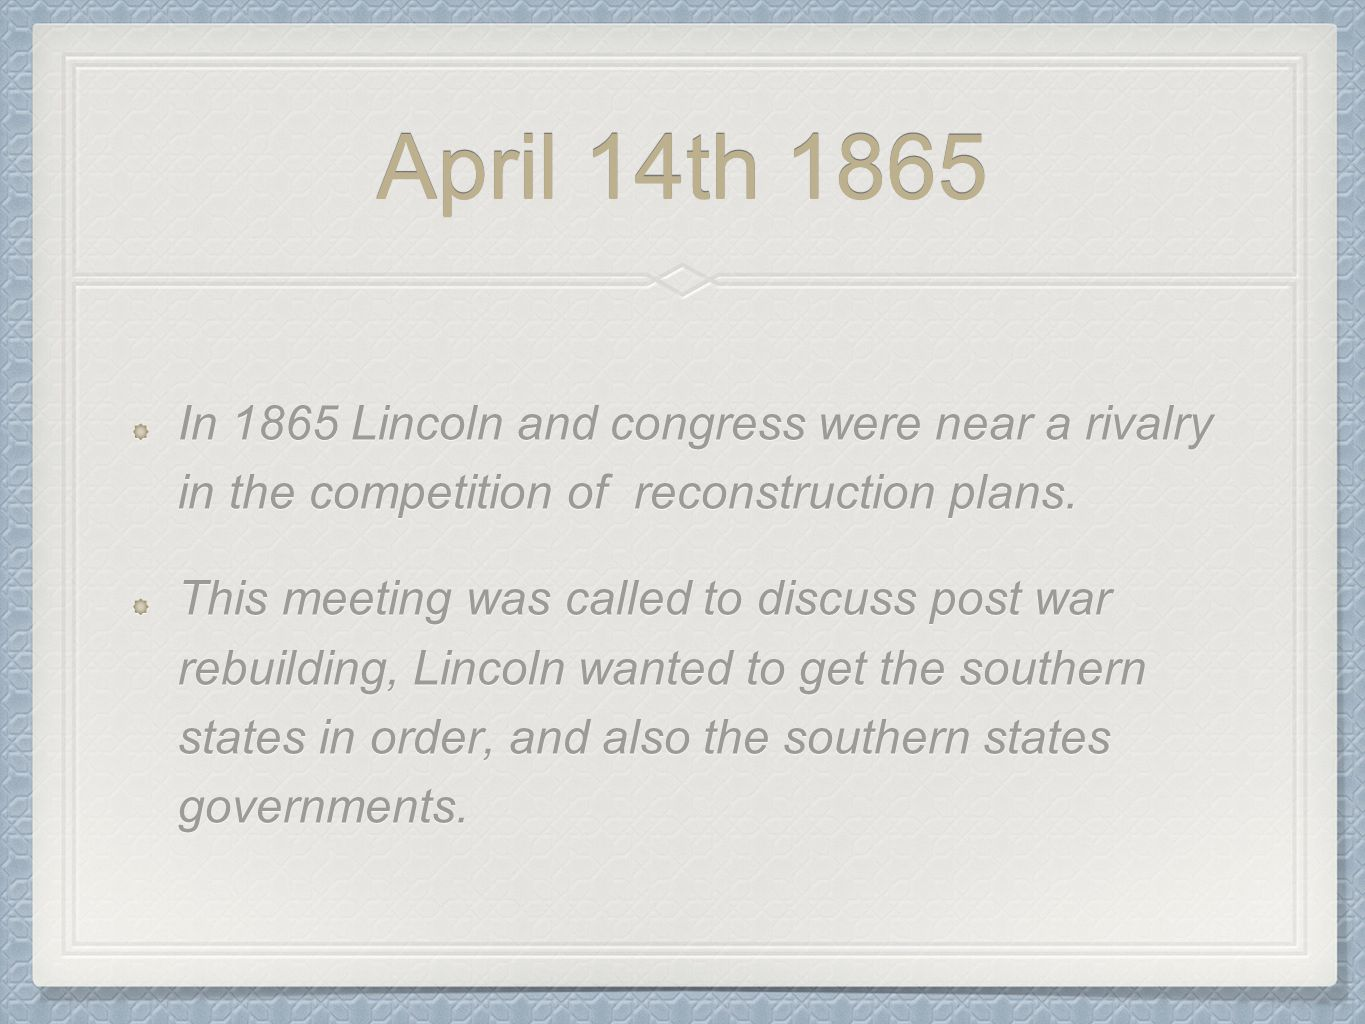 April 14th 1865 In 1865 Lincoln and congress were near a rivalry in the competition of reconstruction plans. This meeting was called to discuss post w